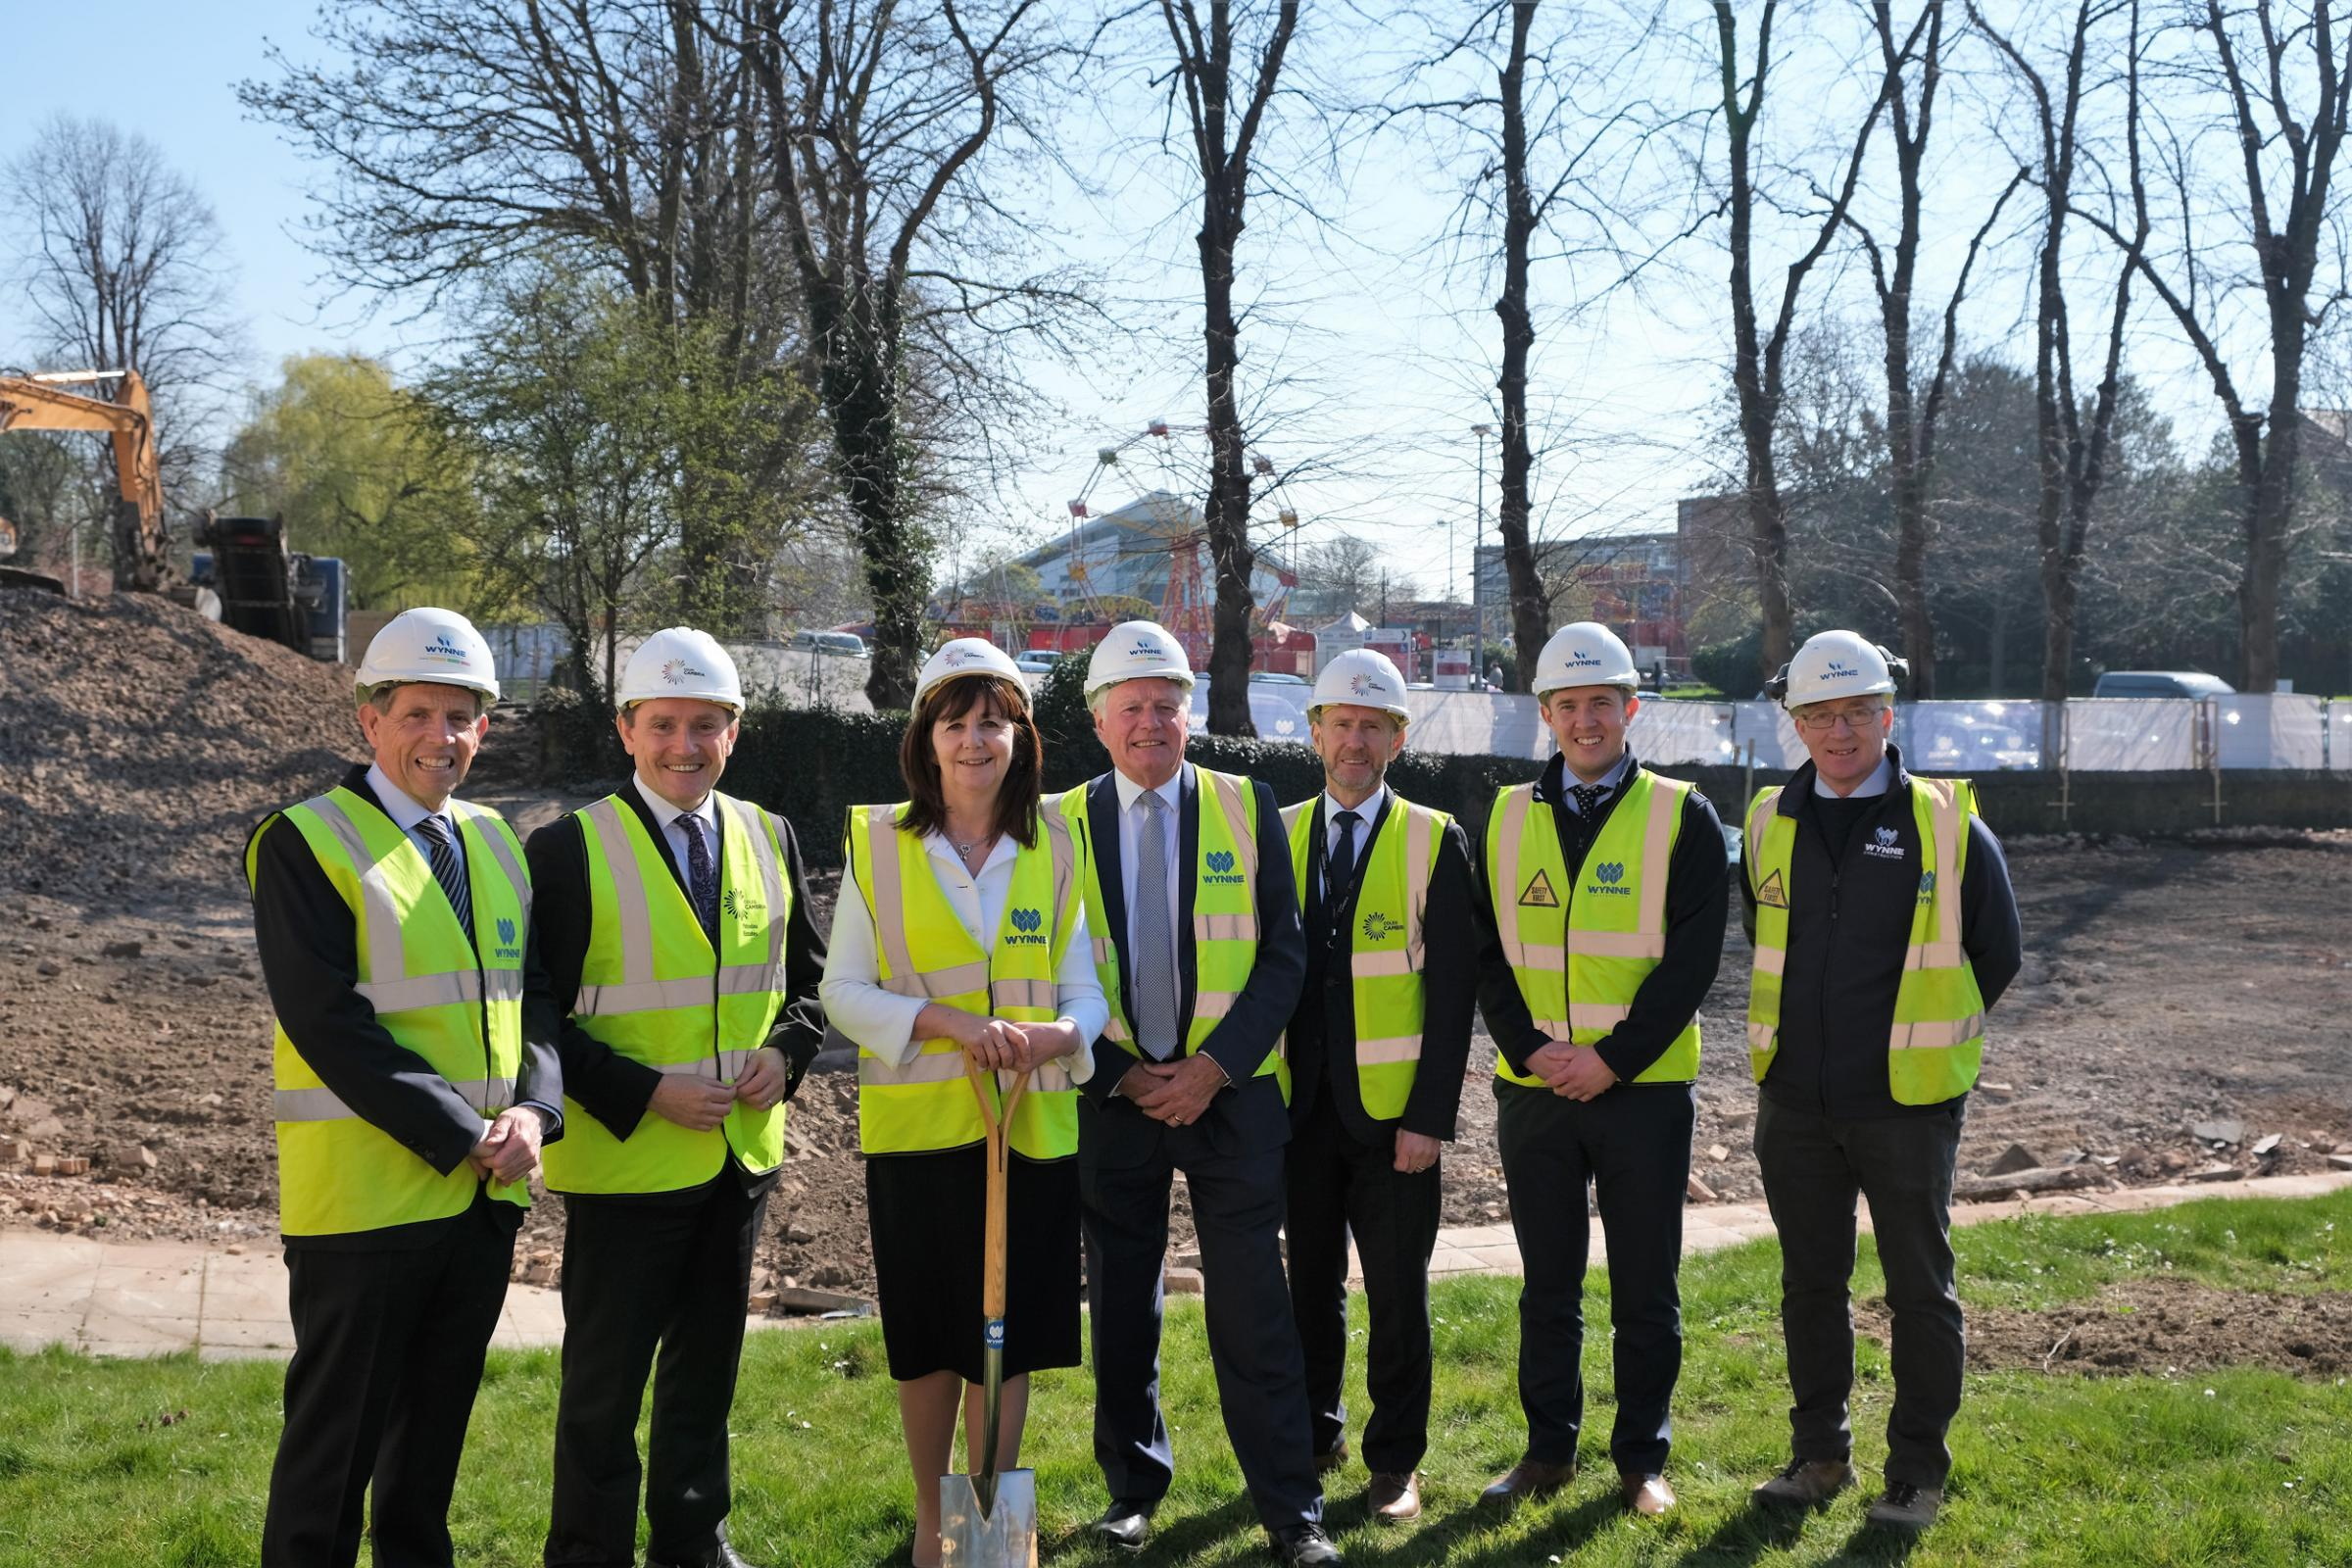 From left: Chris Wynne, managing director at Wynne Construction; David Jones, Coleg Cambria CEO; Lesley Griffiths, AM for Wrexham; John Clutton, chair of Coleg Cambria; Graham Evans, head of capital build at Coleg Cambria; David Wynne, quantity surveyor a